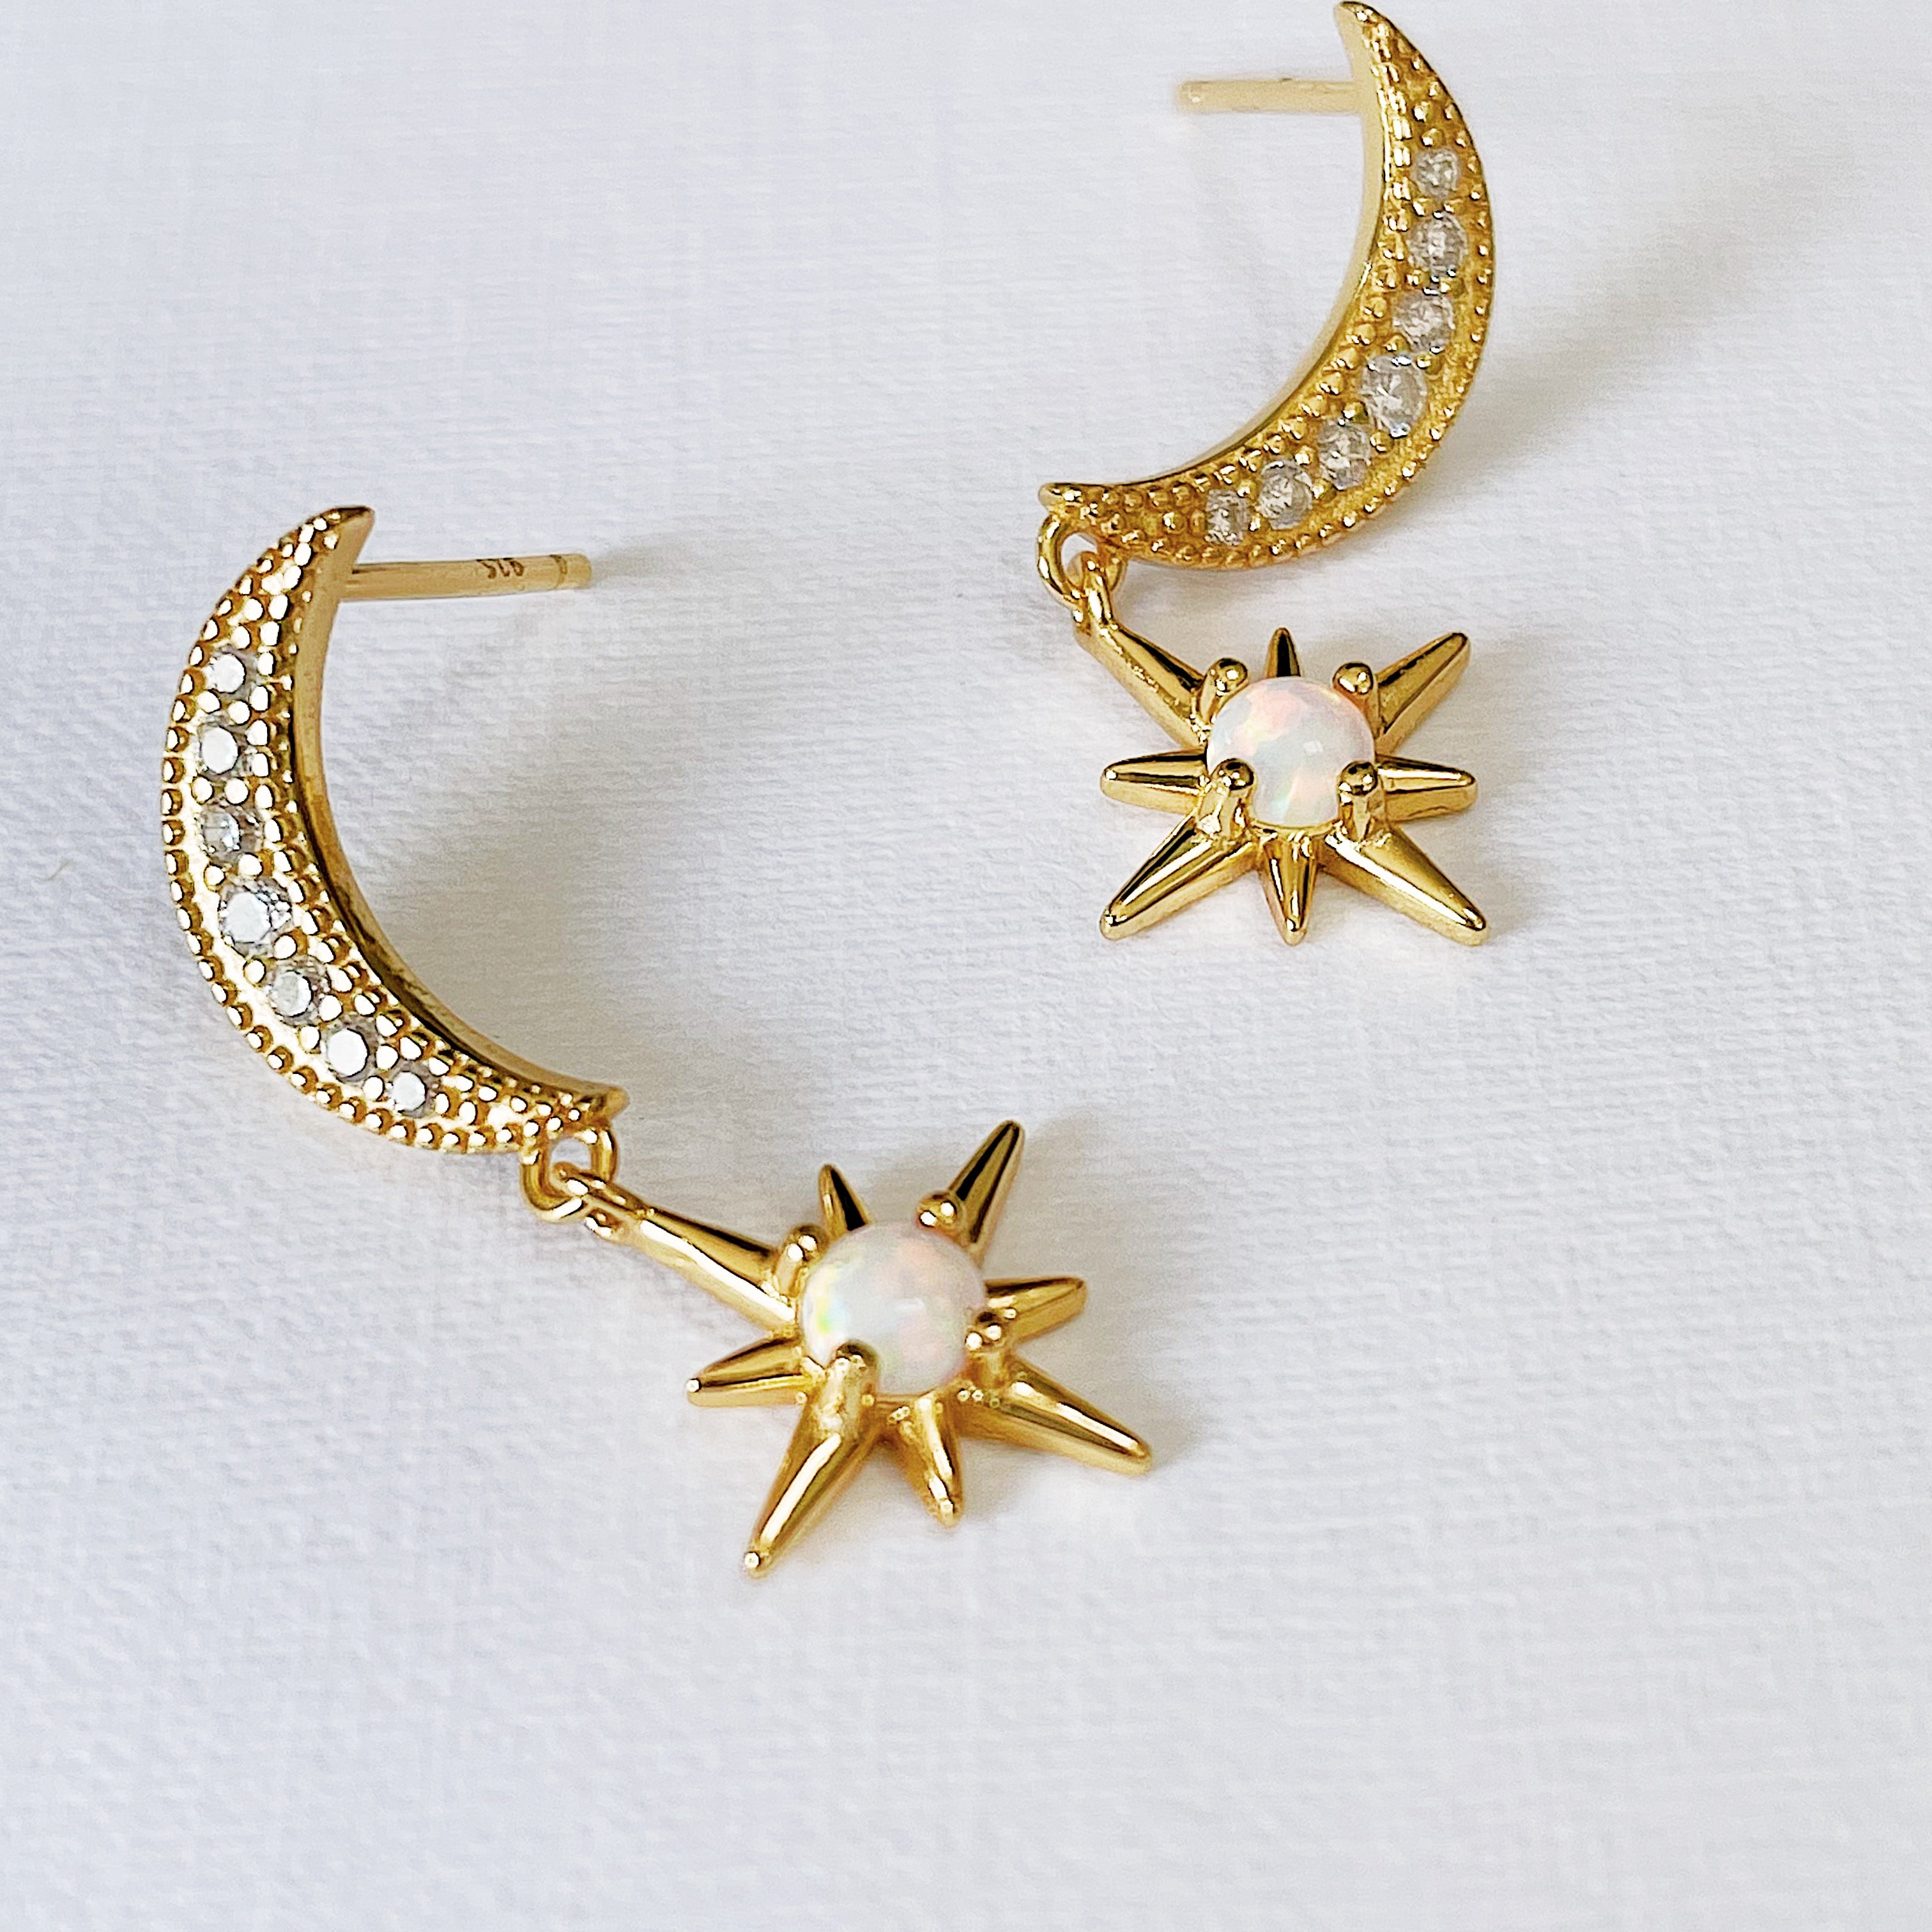 HALF MOON LUNA DROP EARRINGS